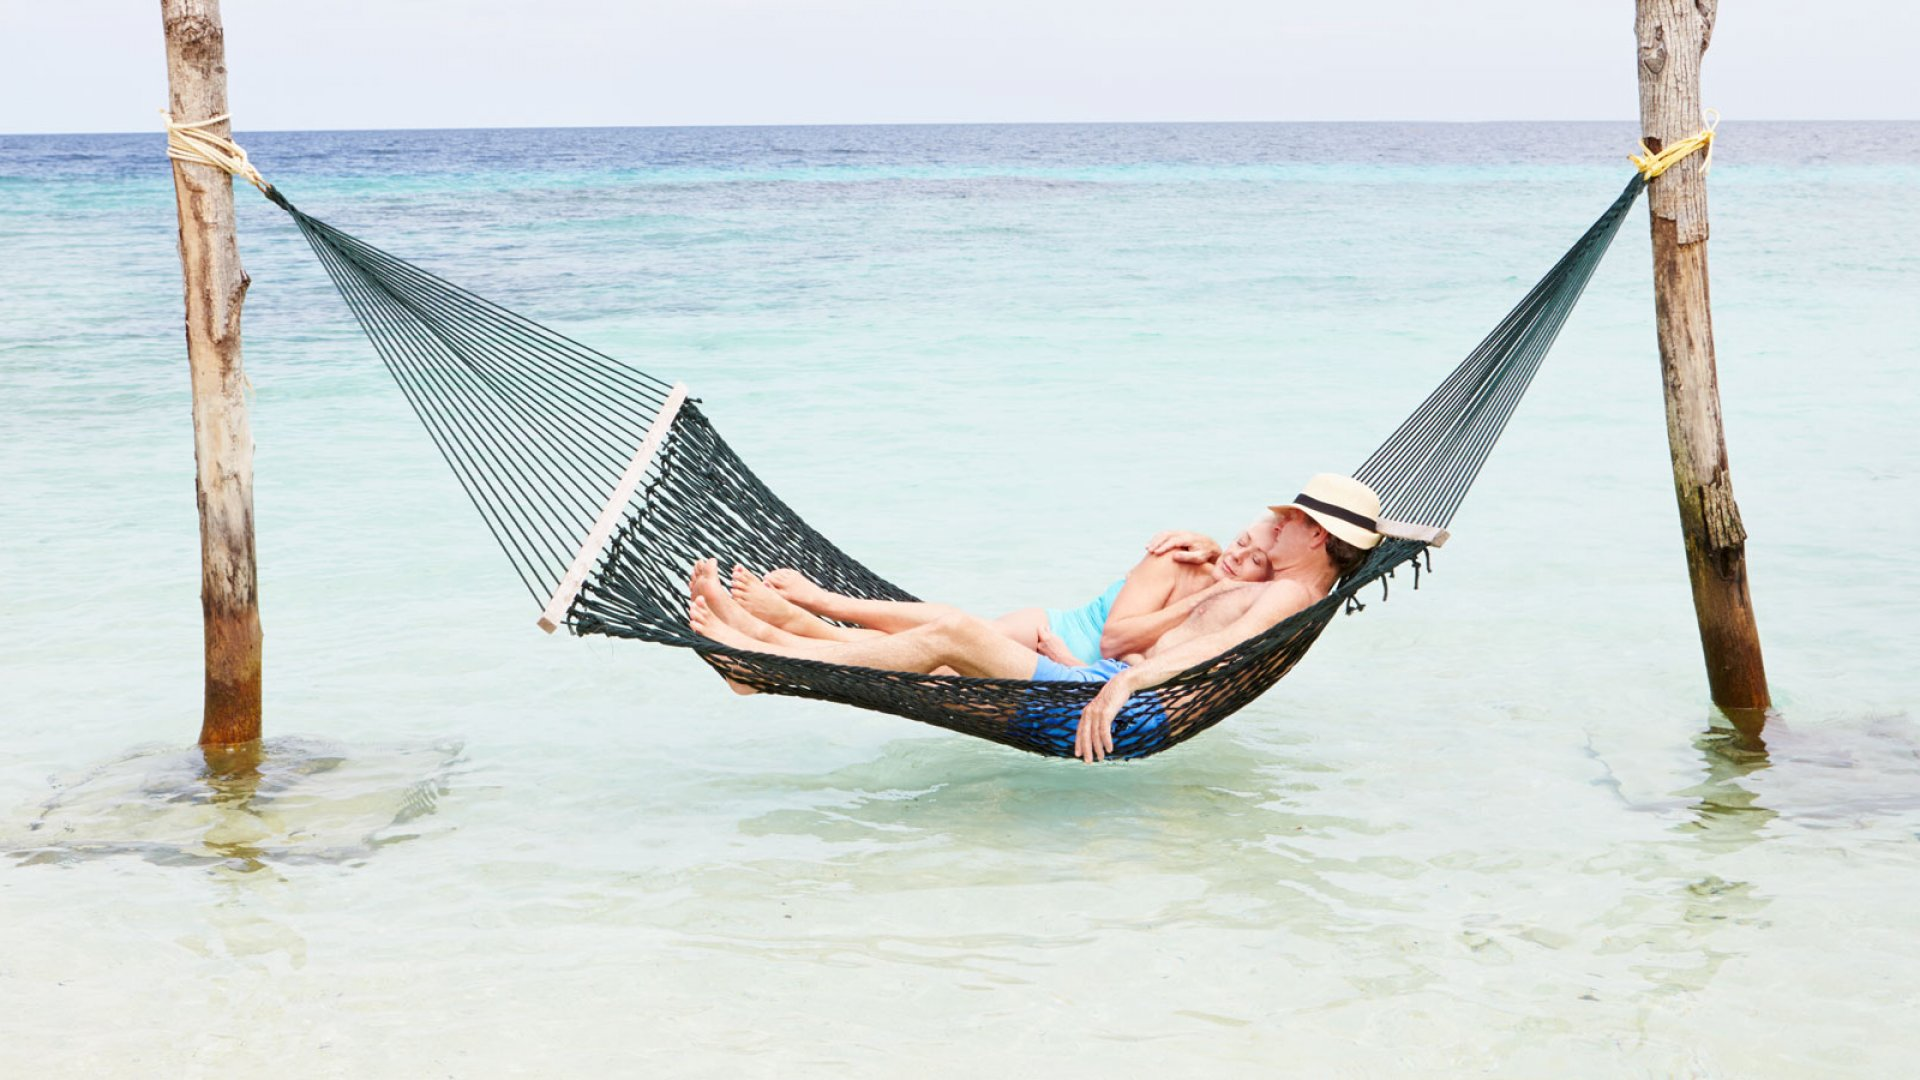 The Best Way to Vacation? 2 Competing Theories